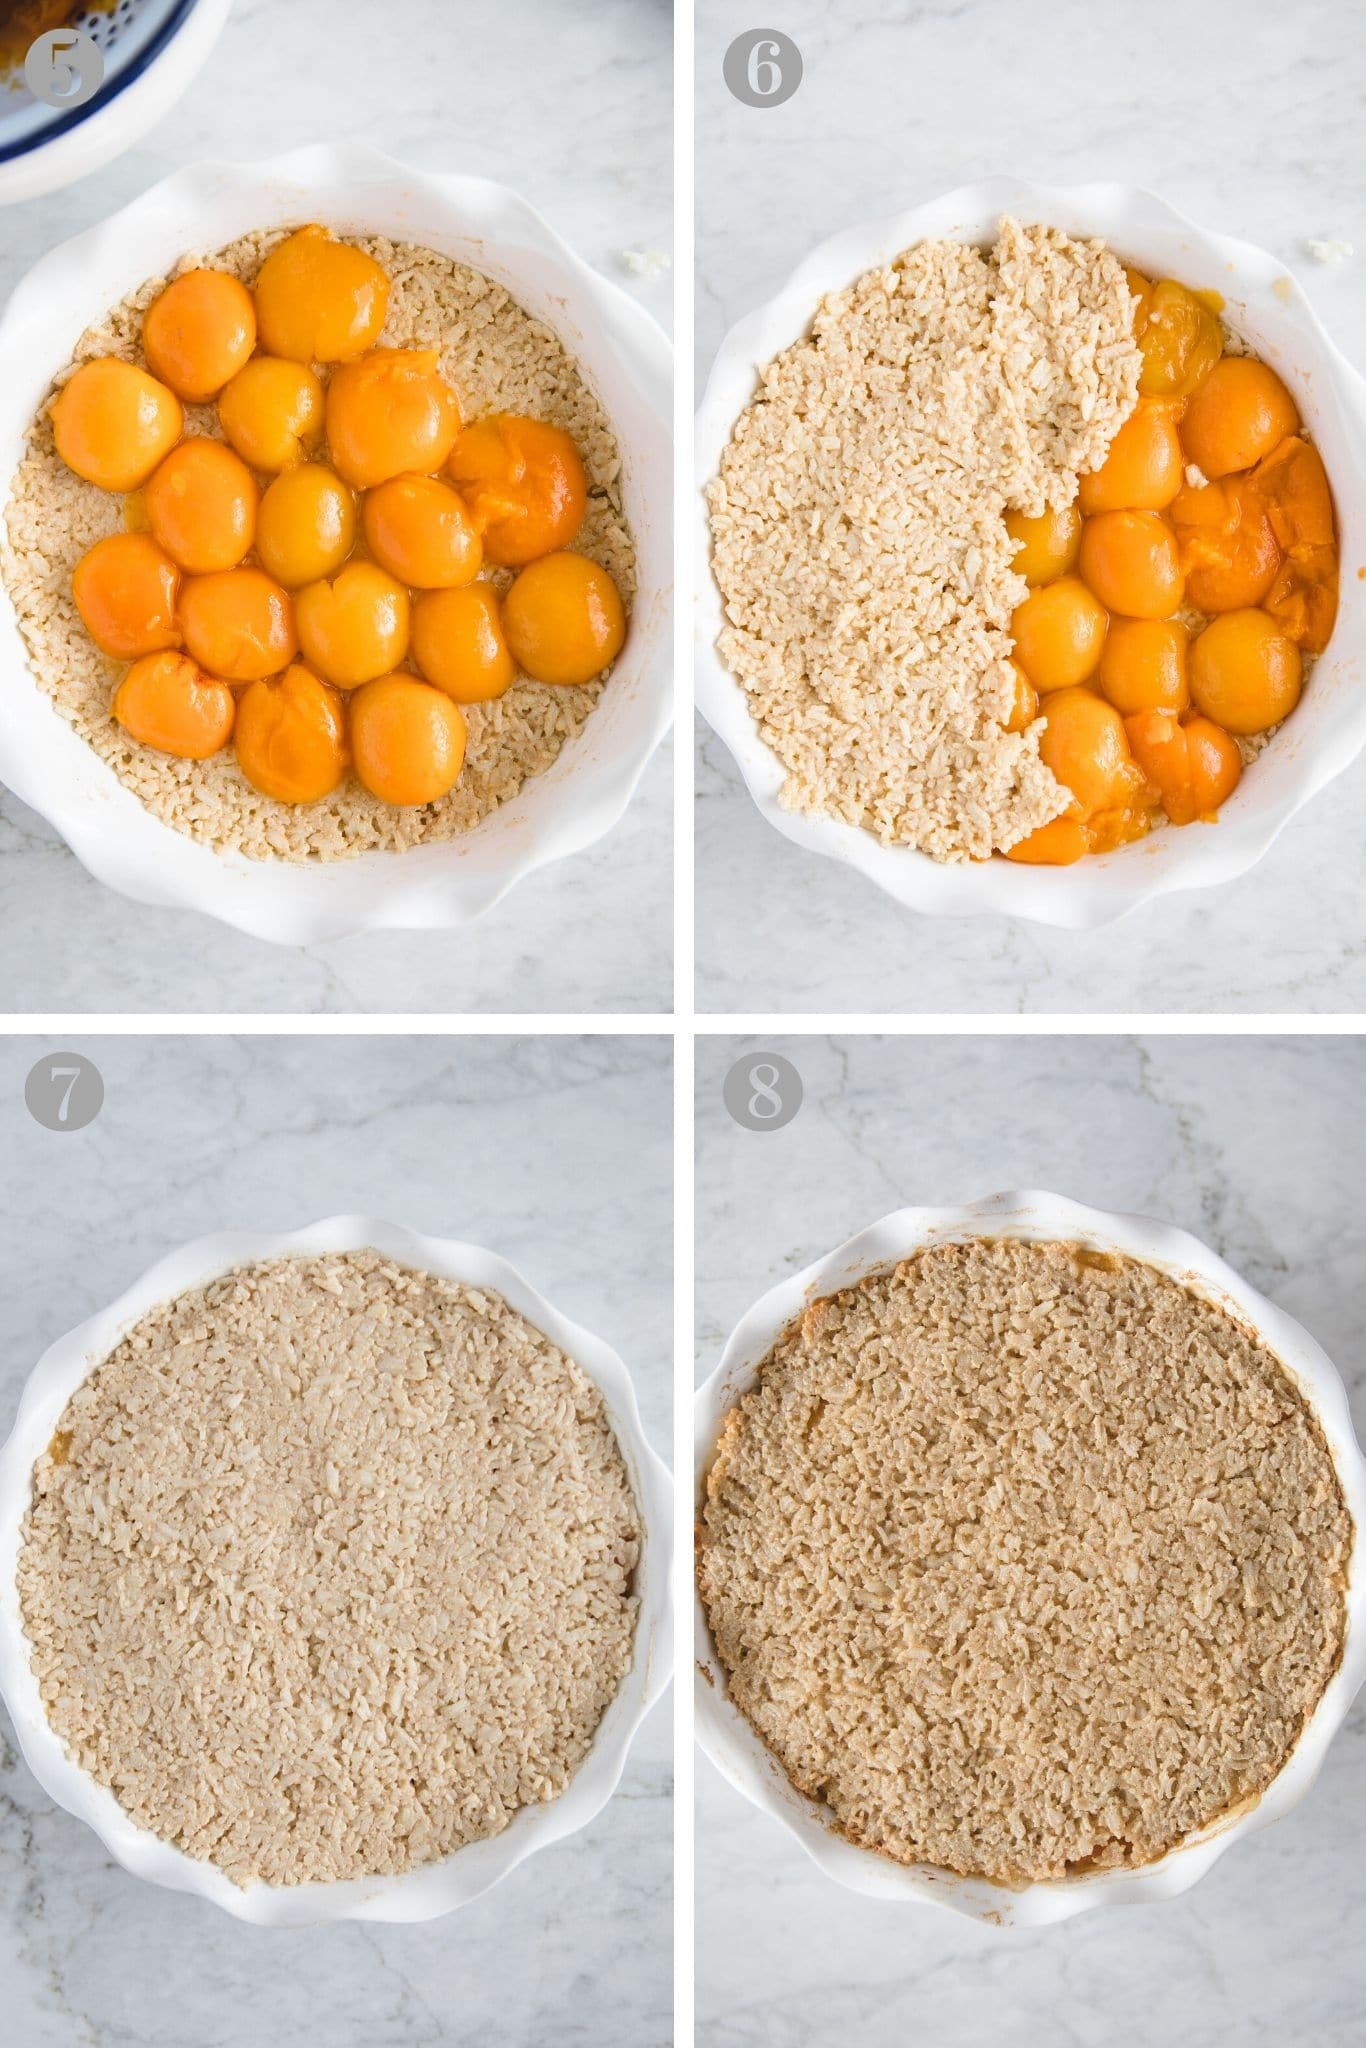 Steps to make Baked Rice Pudding with Apricots from verygoodcook.com